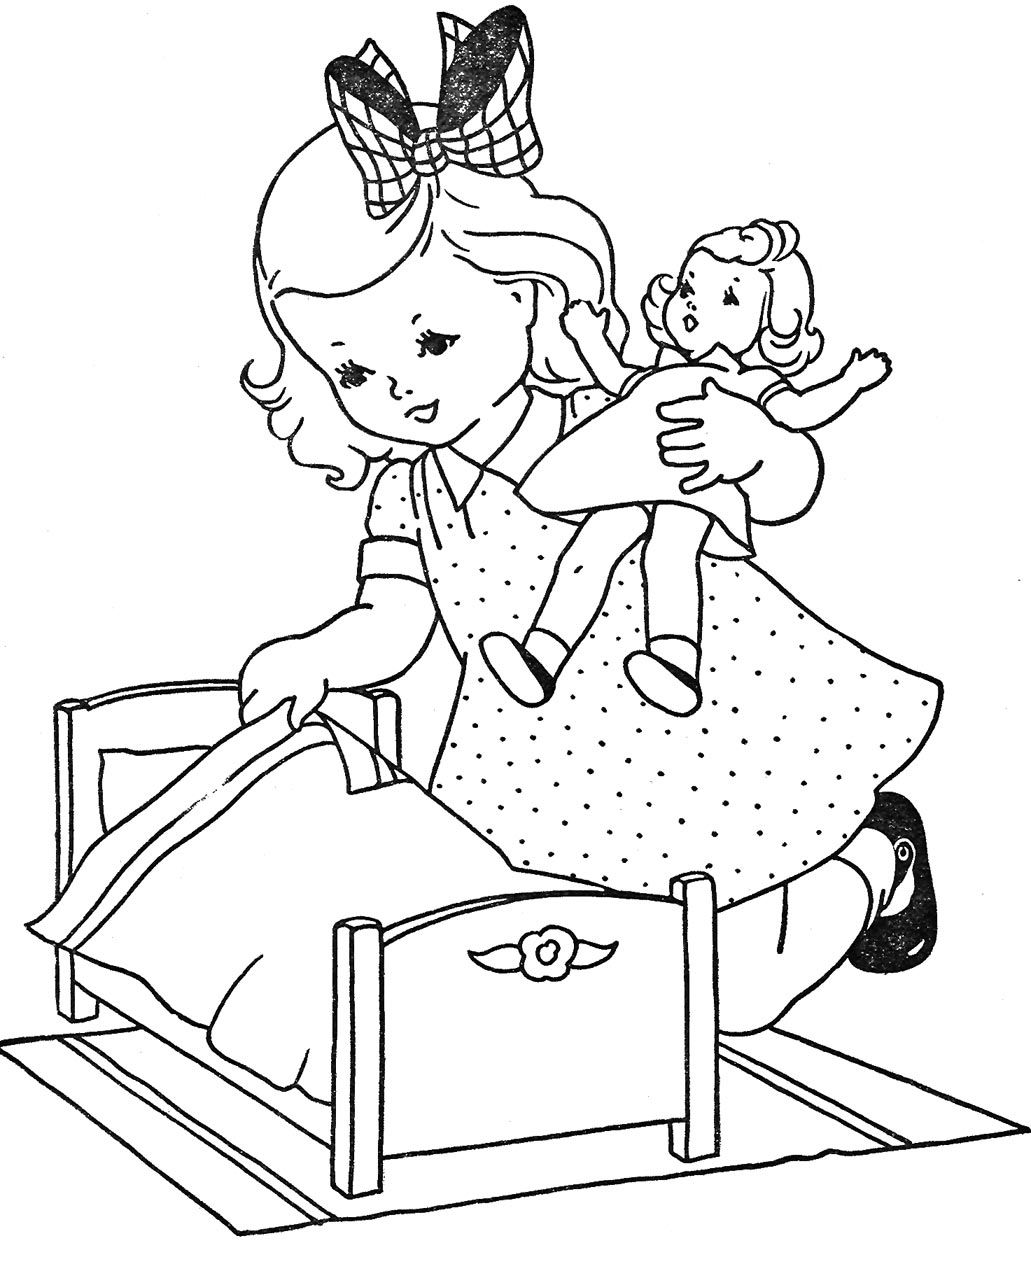 1031x1264 Cute Coloring Pages For Girls And Boys Double Click On Image